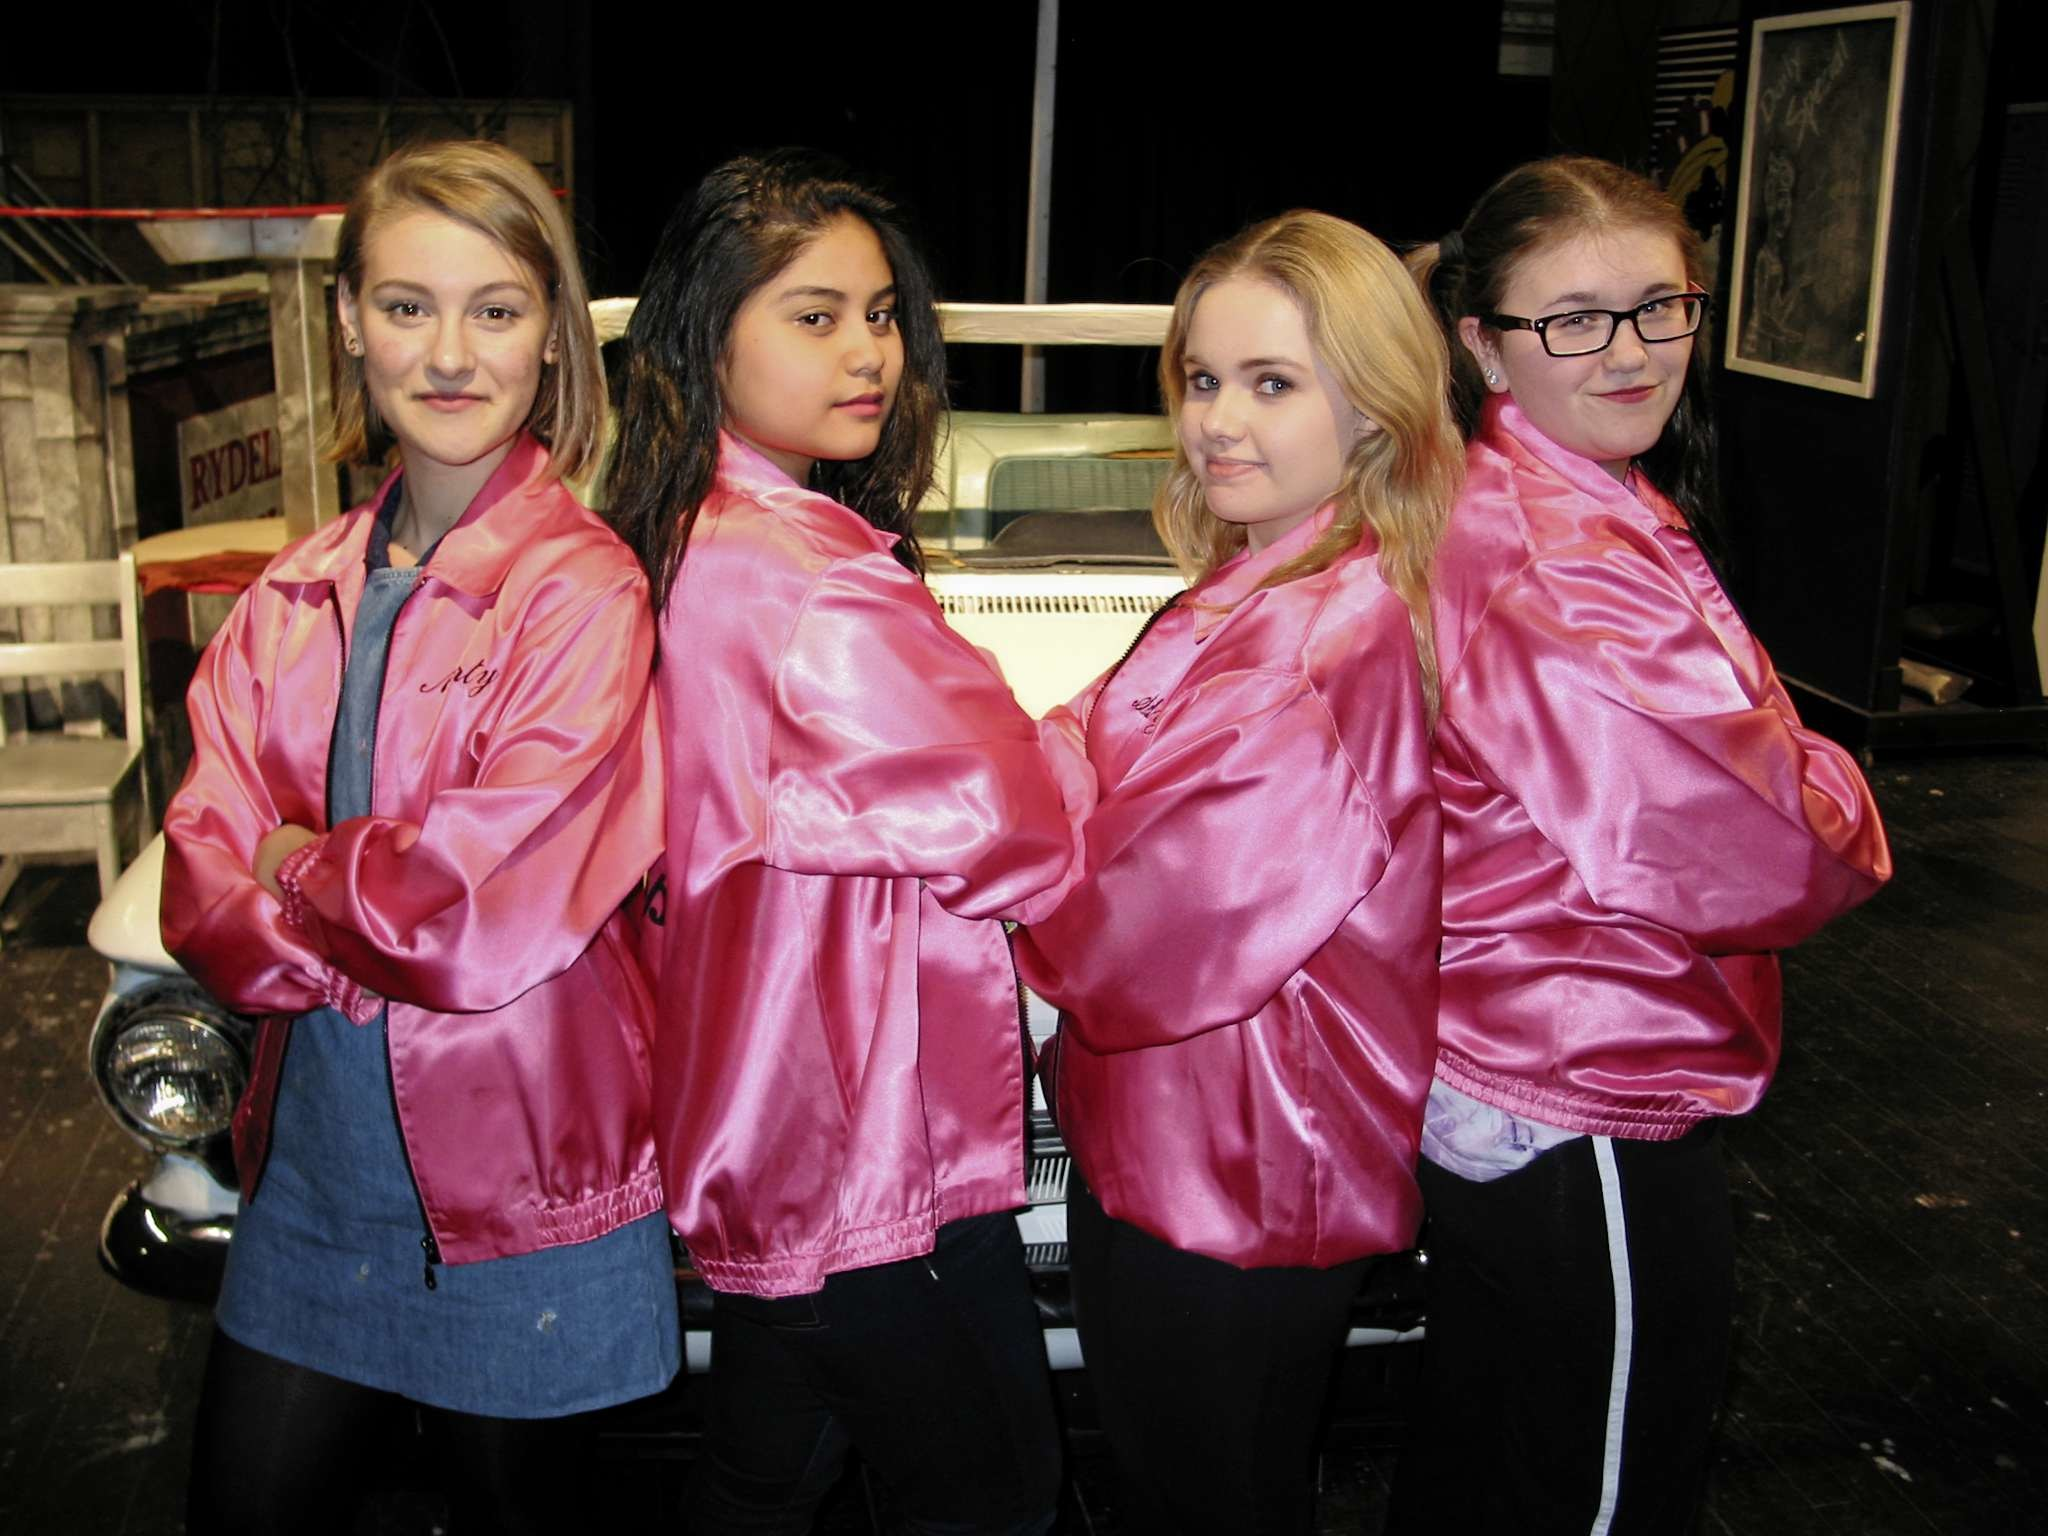 2048x1536 Glenlawn's music teacher teacher Greg Crowe says the school's upcoming  production of Grease is a progressive